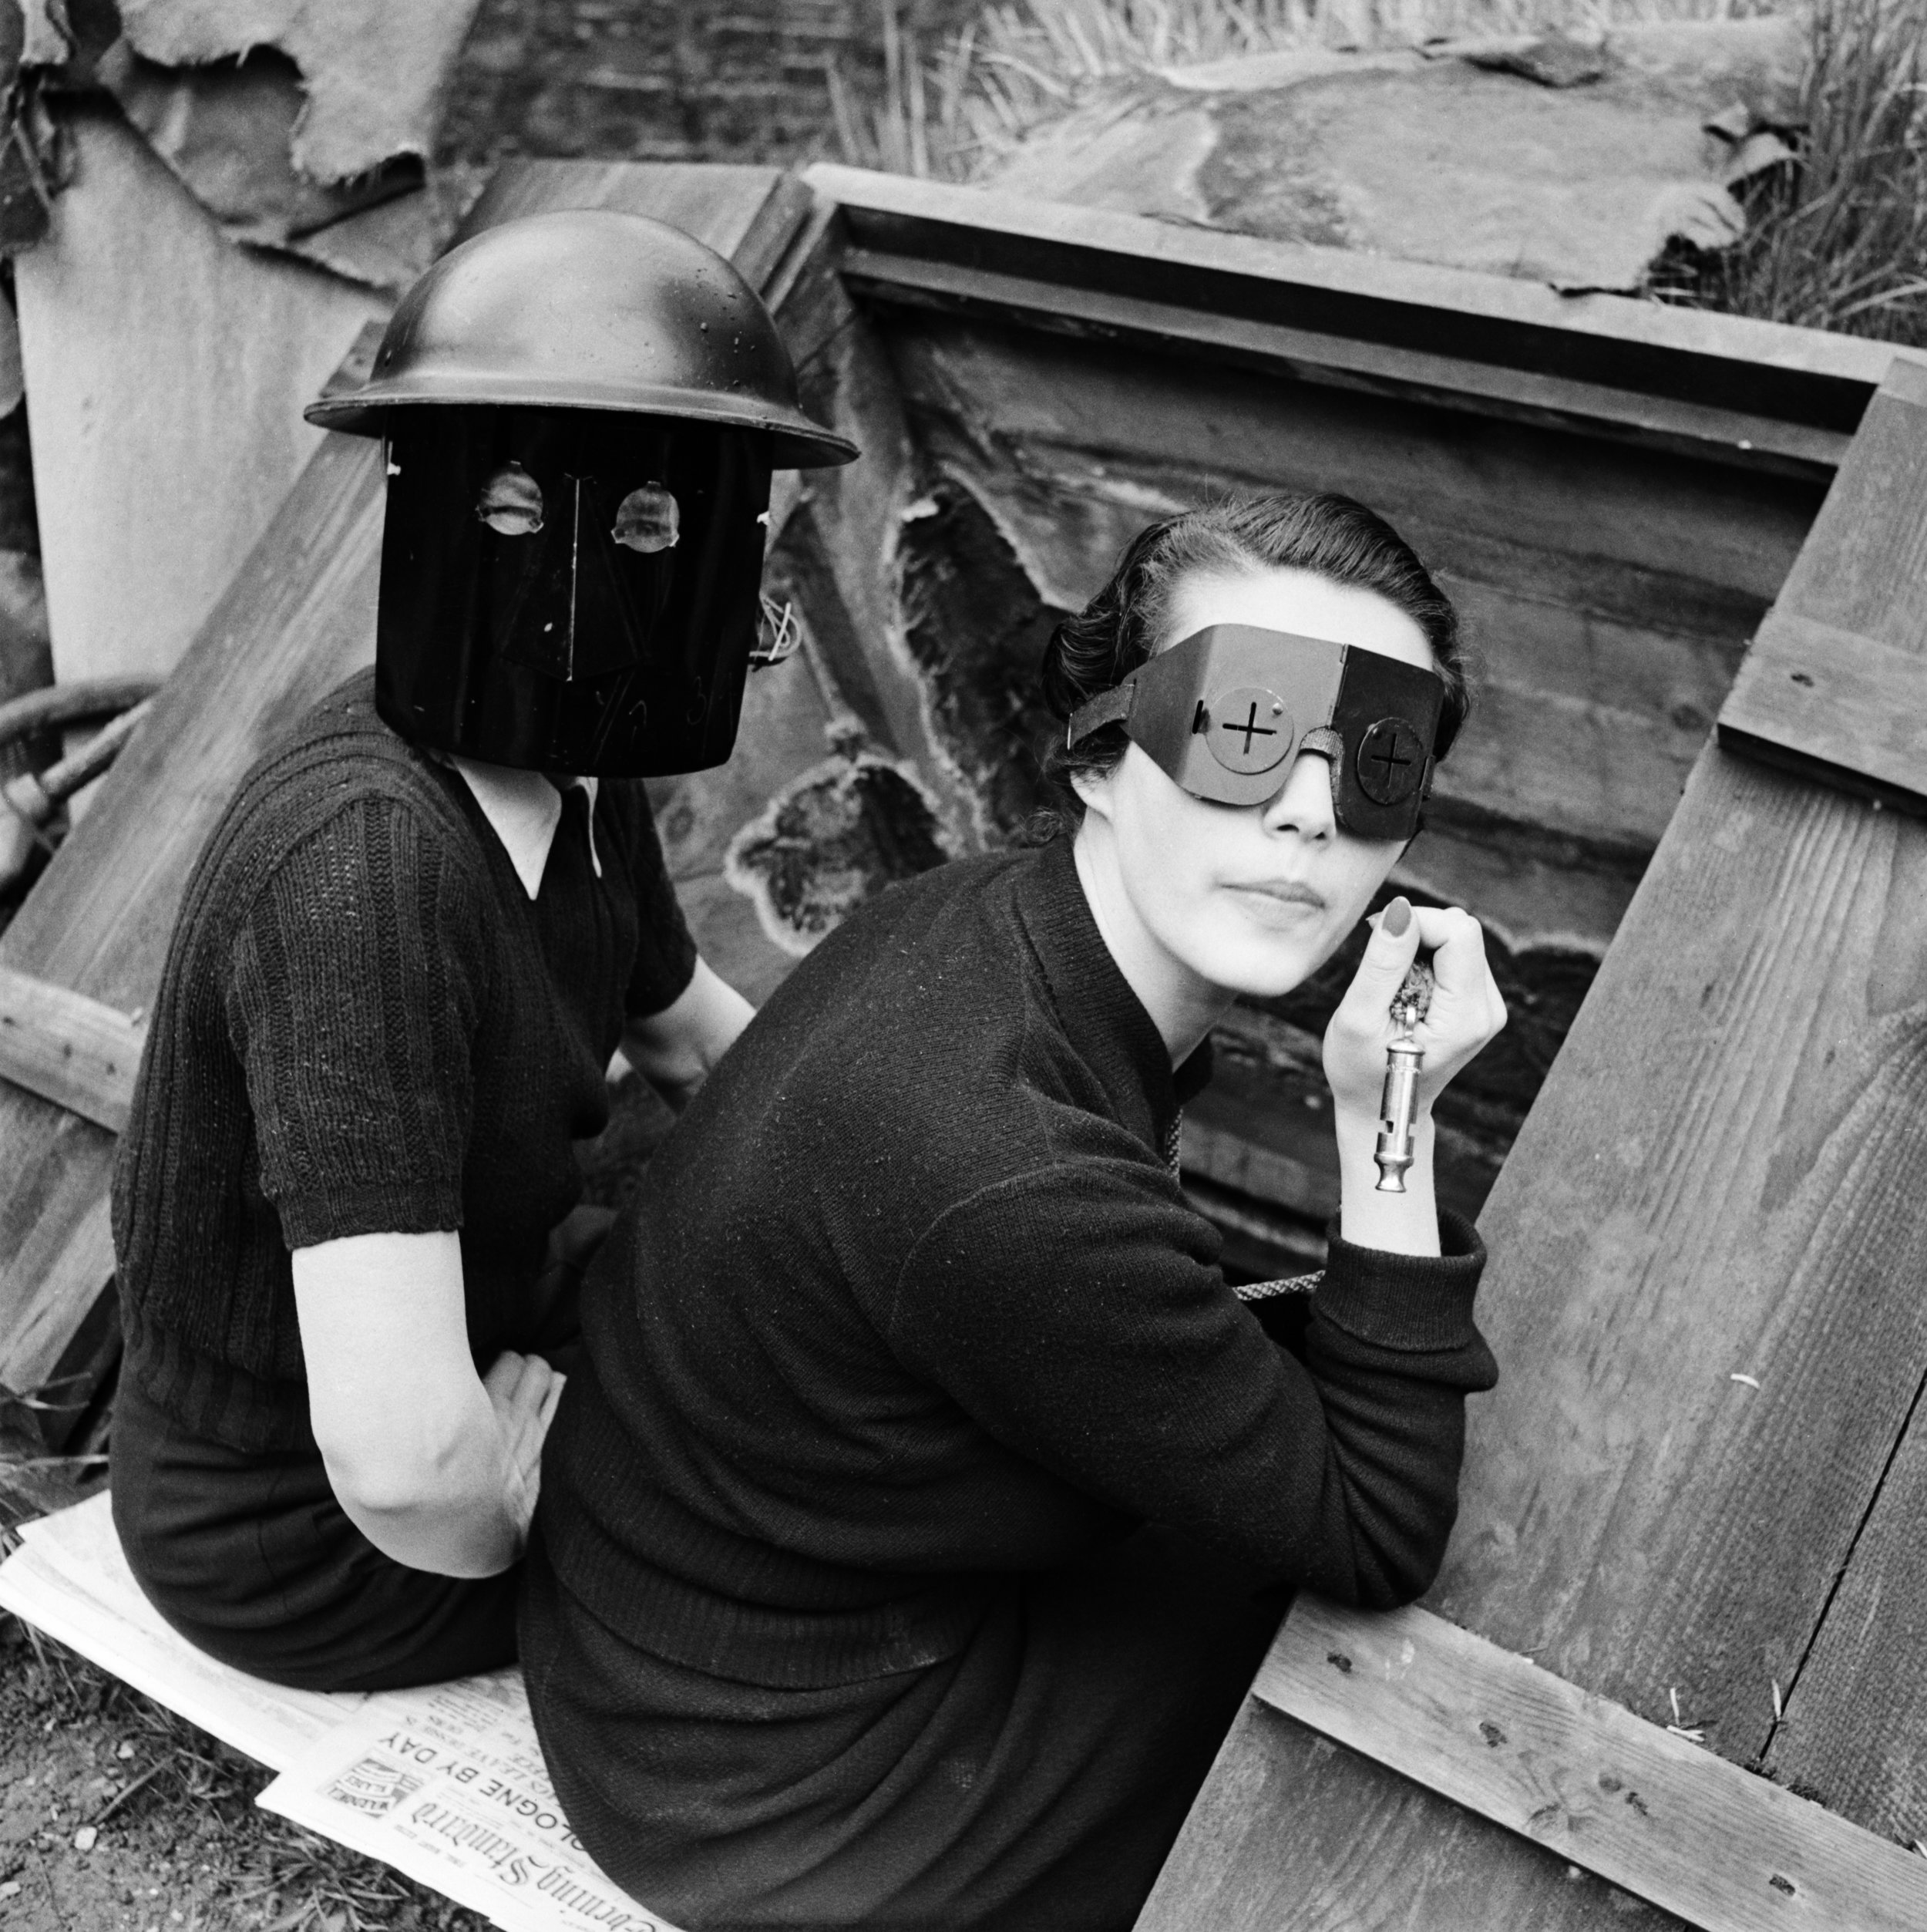 Fire Masks, Downshire Hill, London, England, 1941 by Lee Miller © Lee Miller Archives